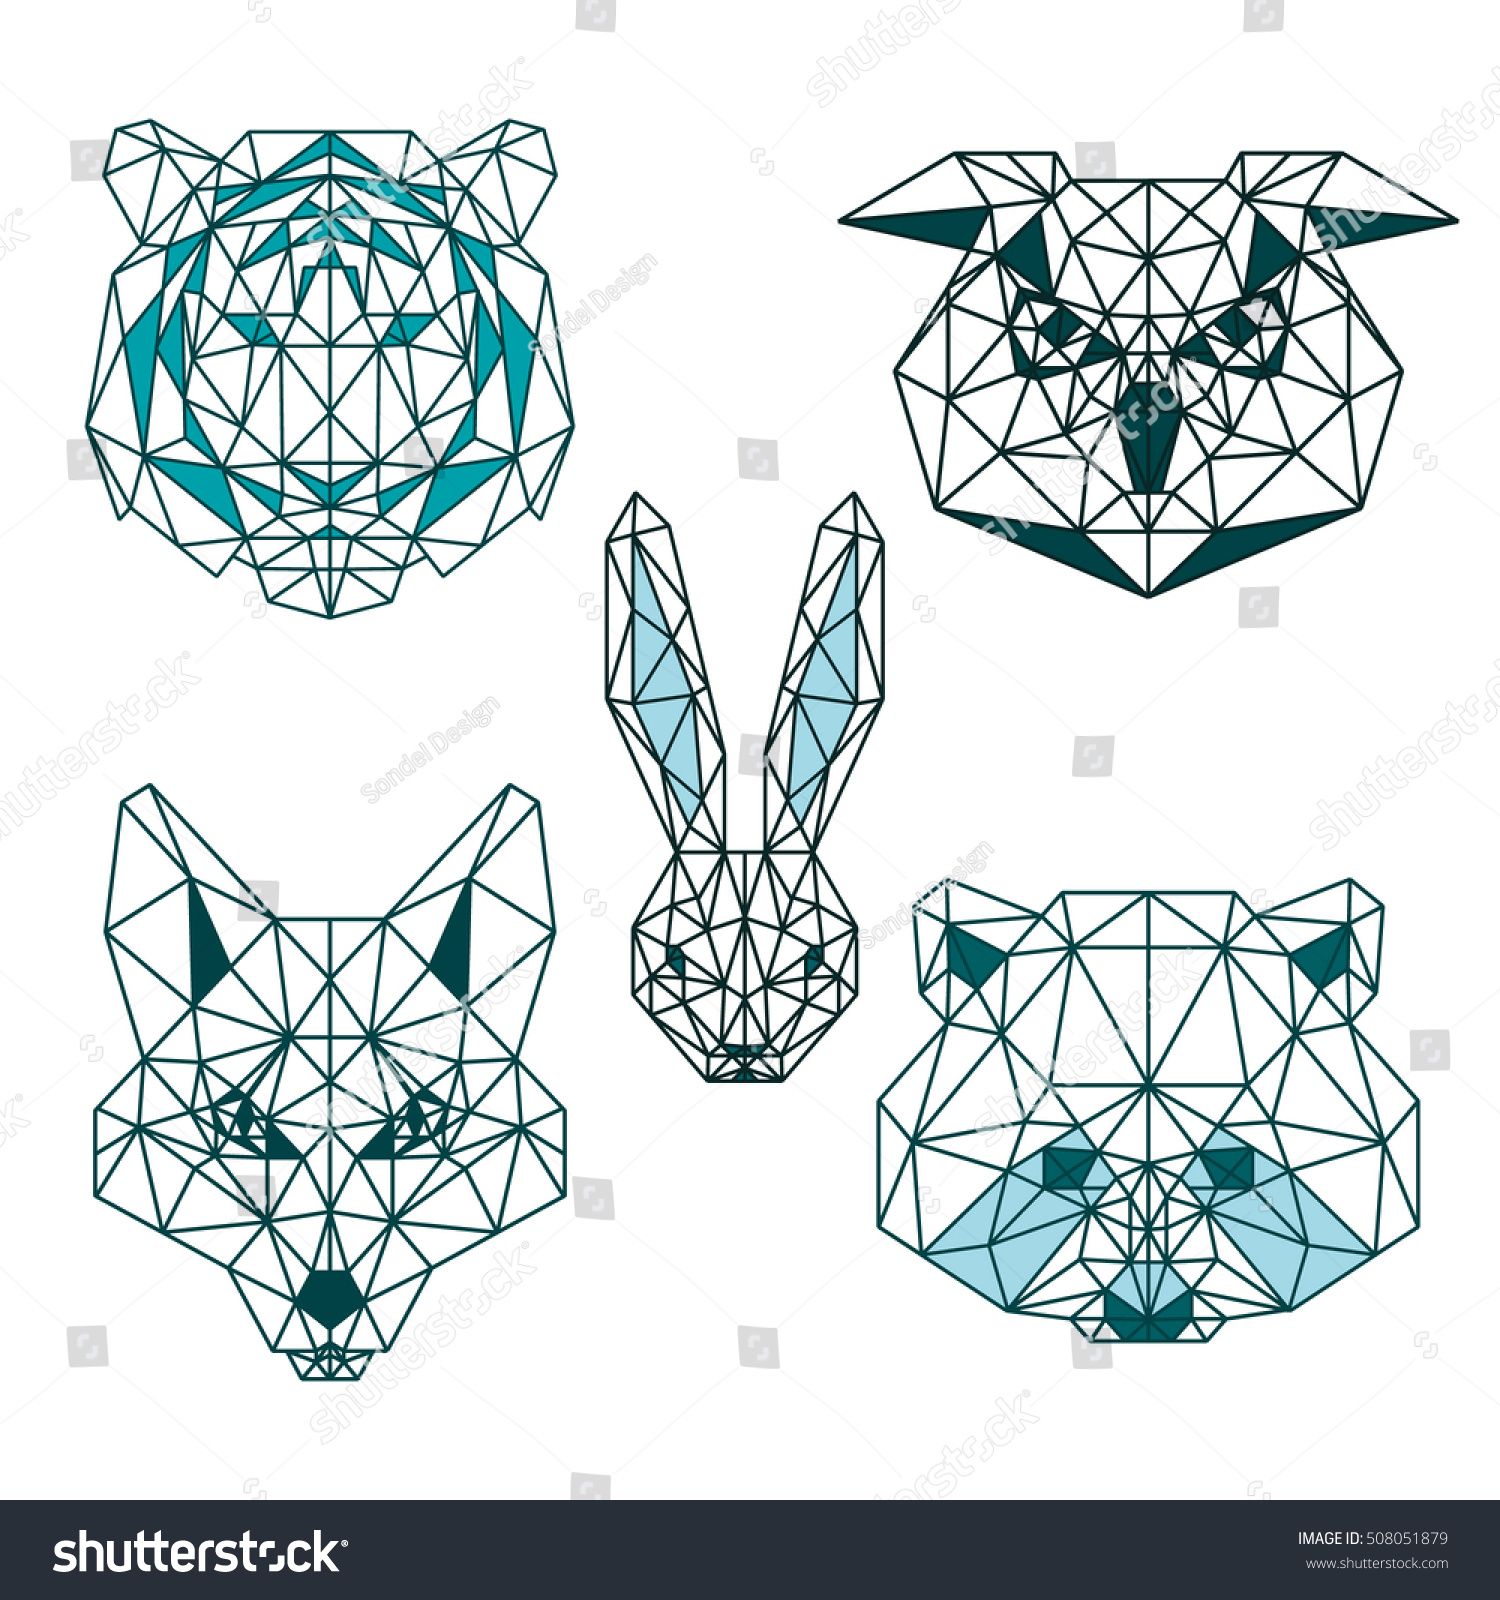 Ppm Wiring Diagram For Vector Animal Head Great Installation Of Raccoon Diagrams Schema Rh 44 Verena Hoegerl De Cell